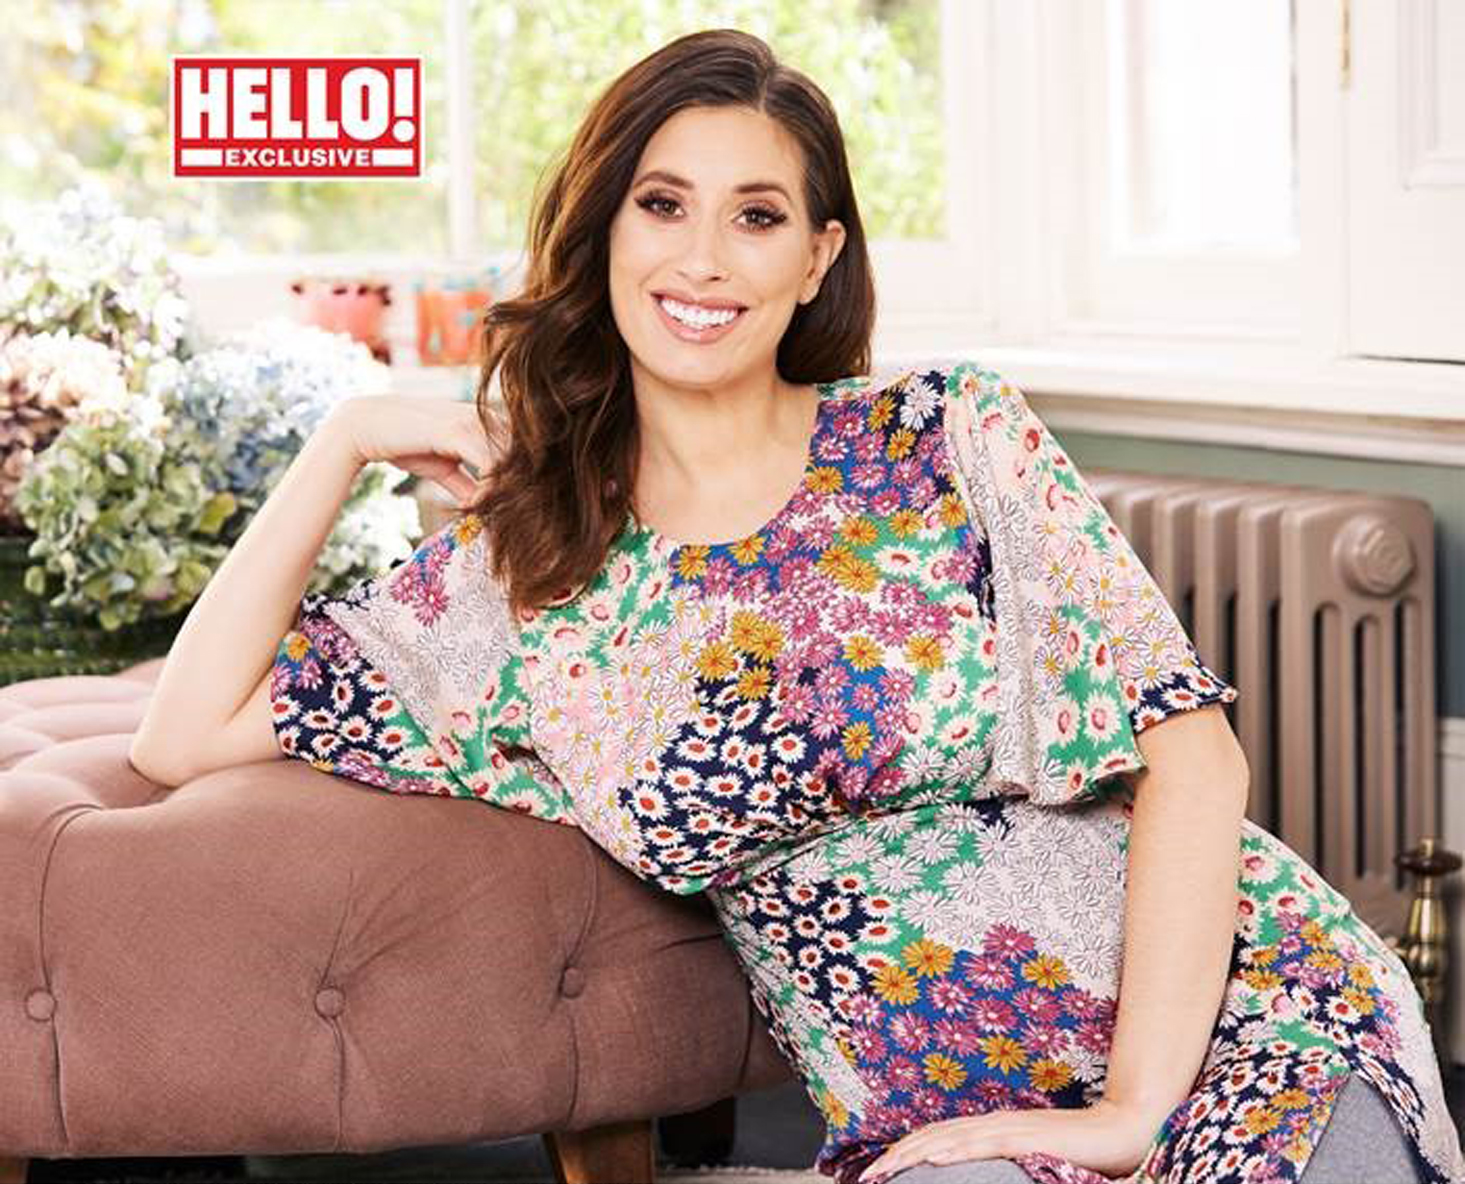 Stacey Solomon in Hello! magazine